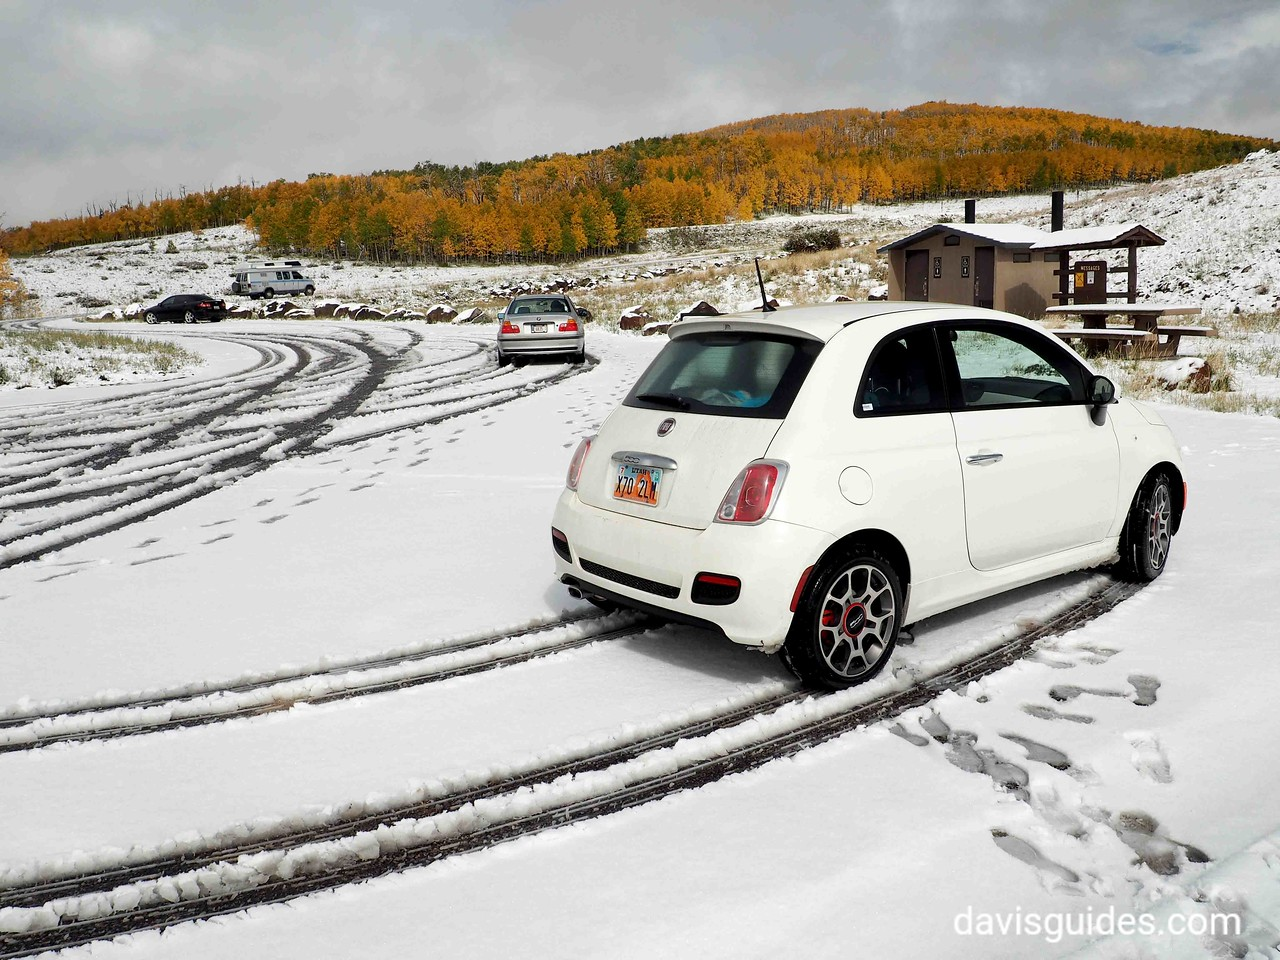 Our little rental car [Fiat] at overlook above Boulder, Utah